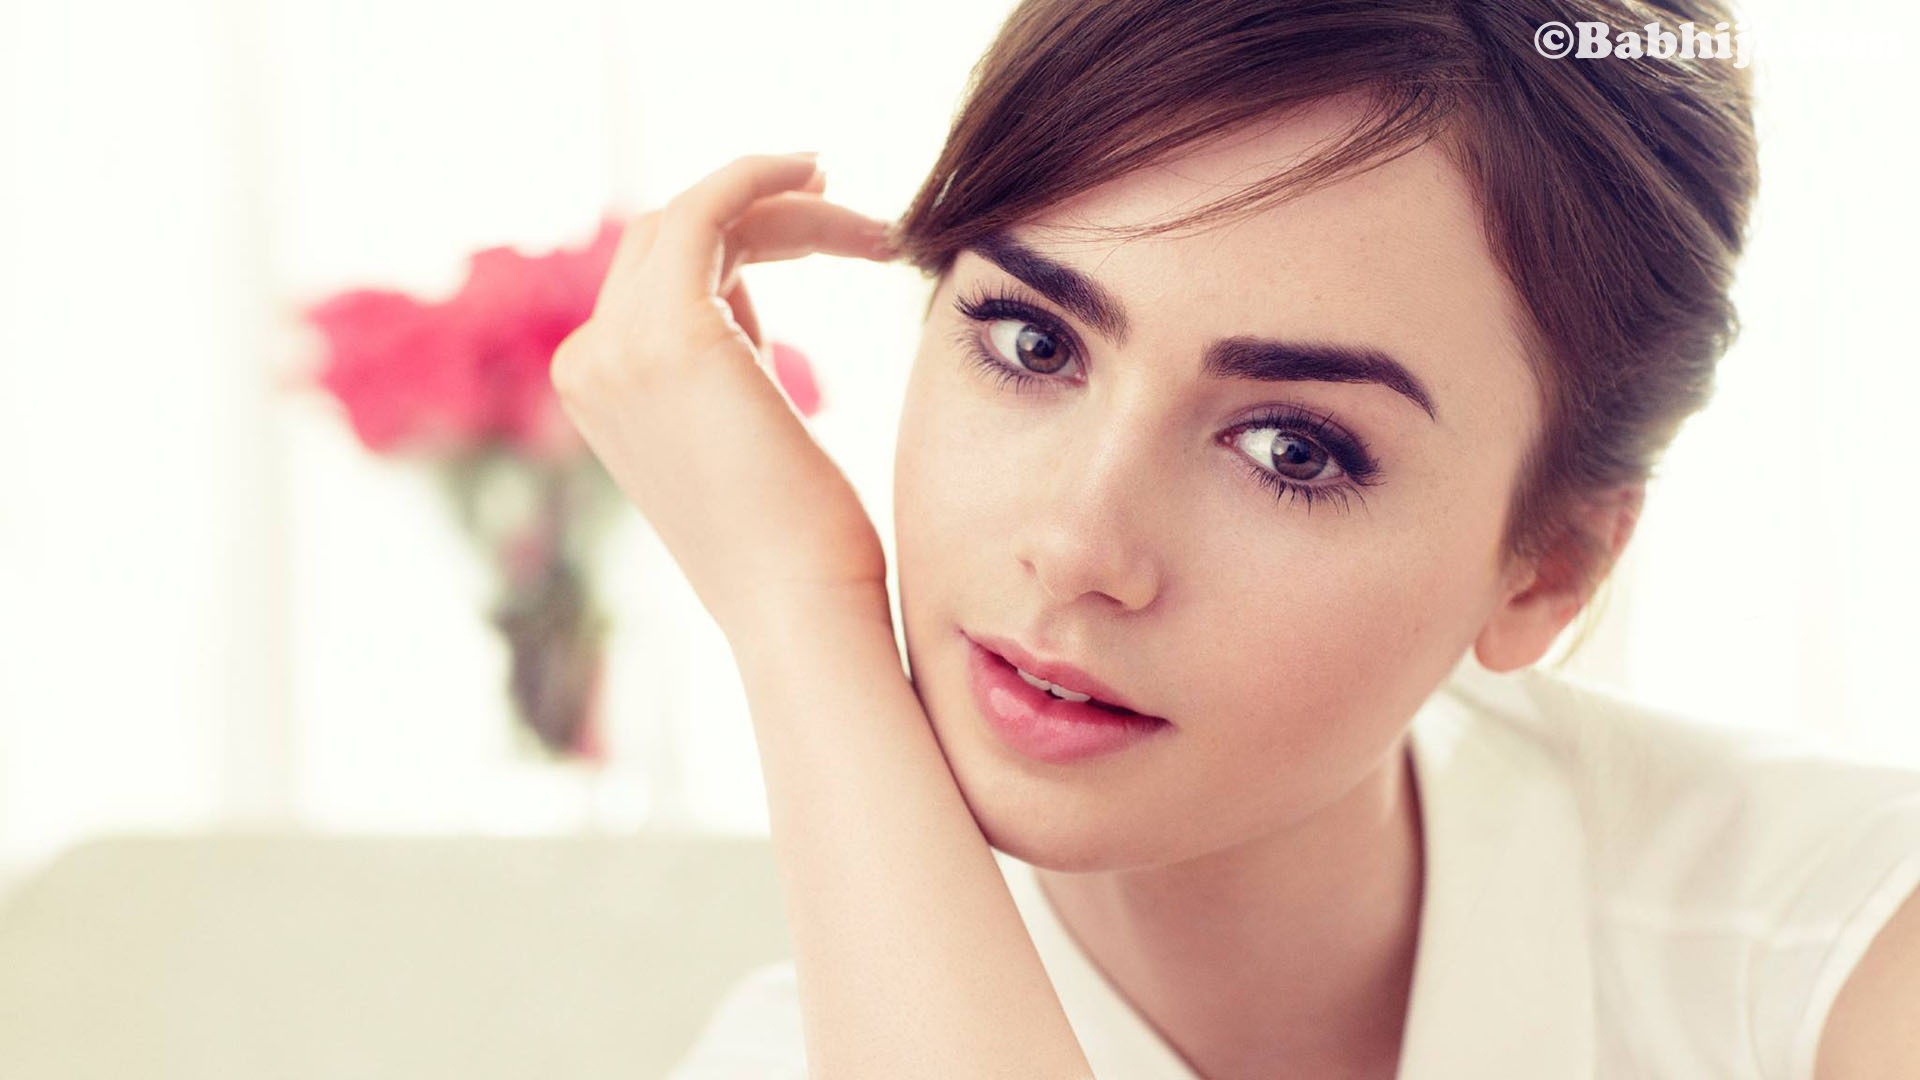 Lily Collins, Lily Collins Wallpaper, Lily Collins Photo, Lily Collins Images